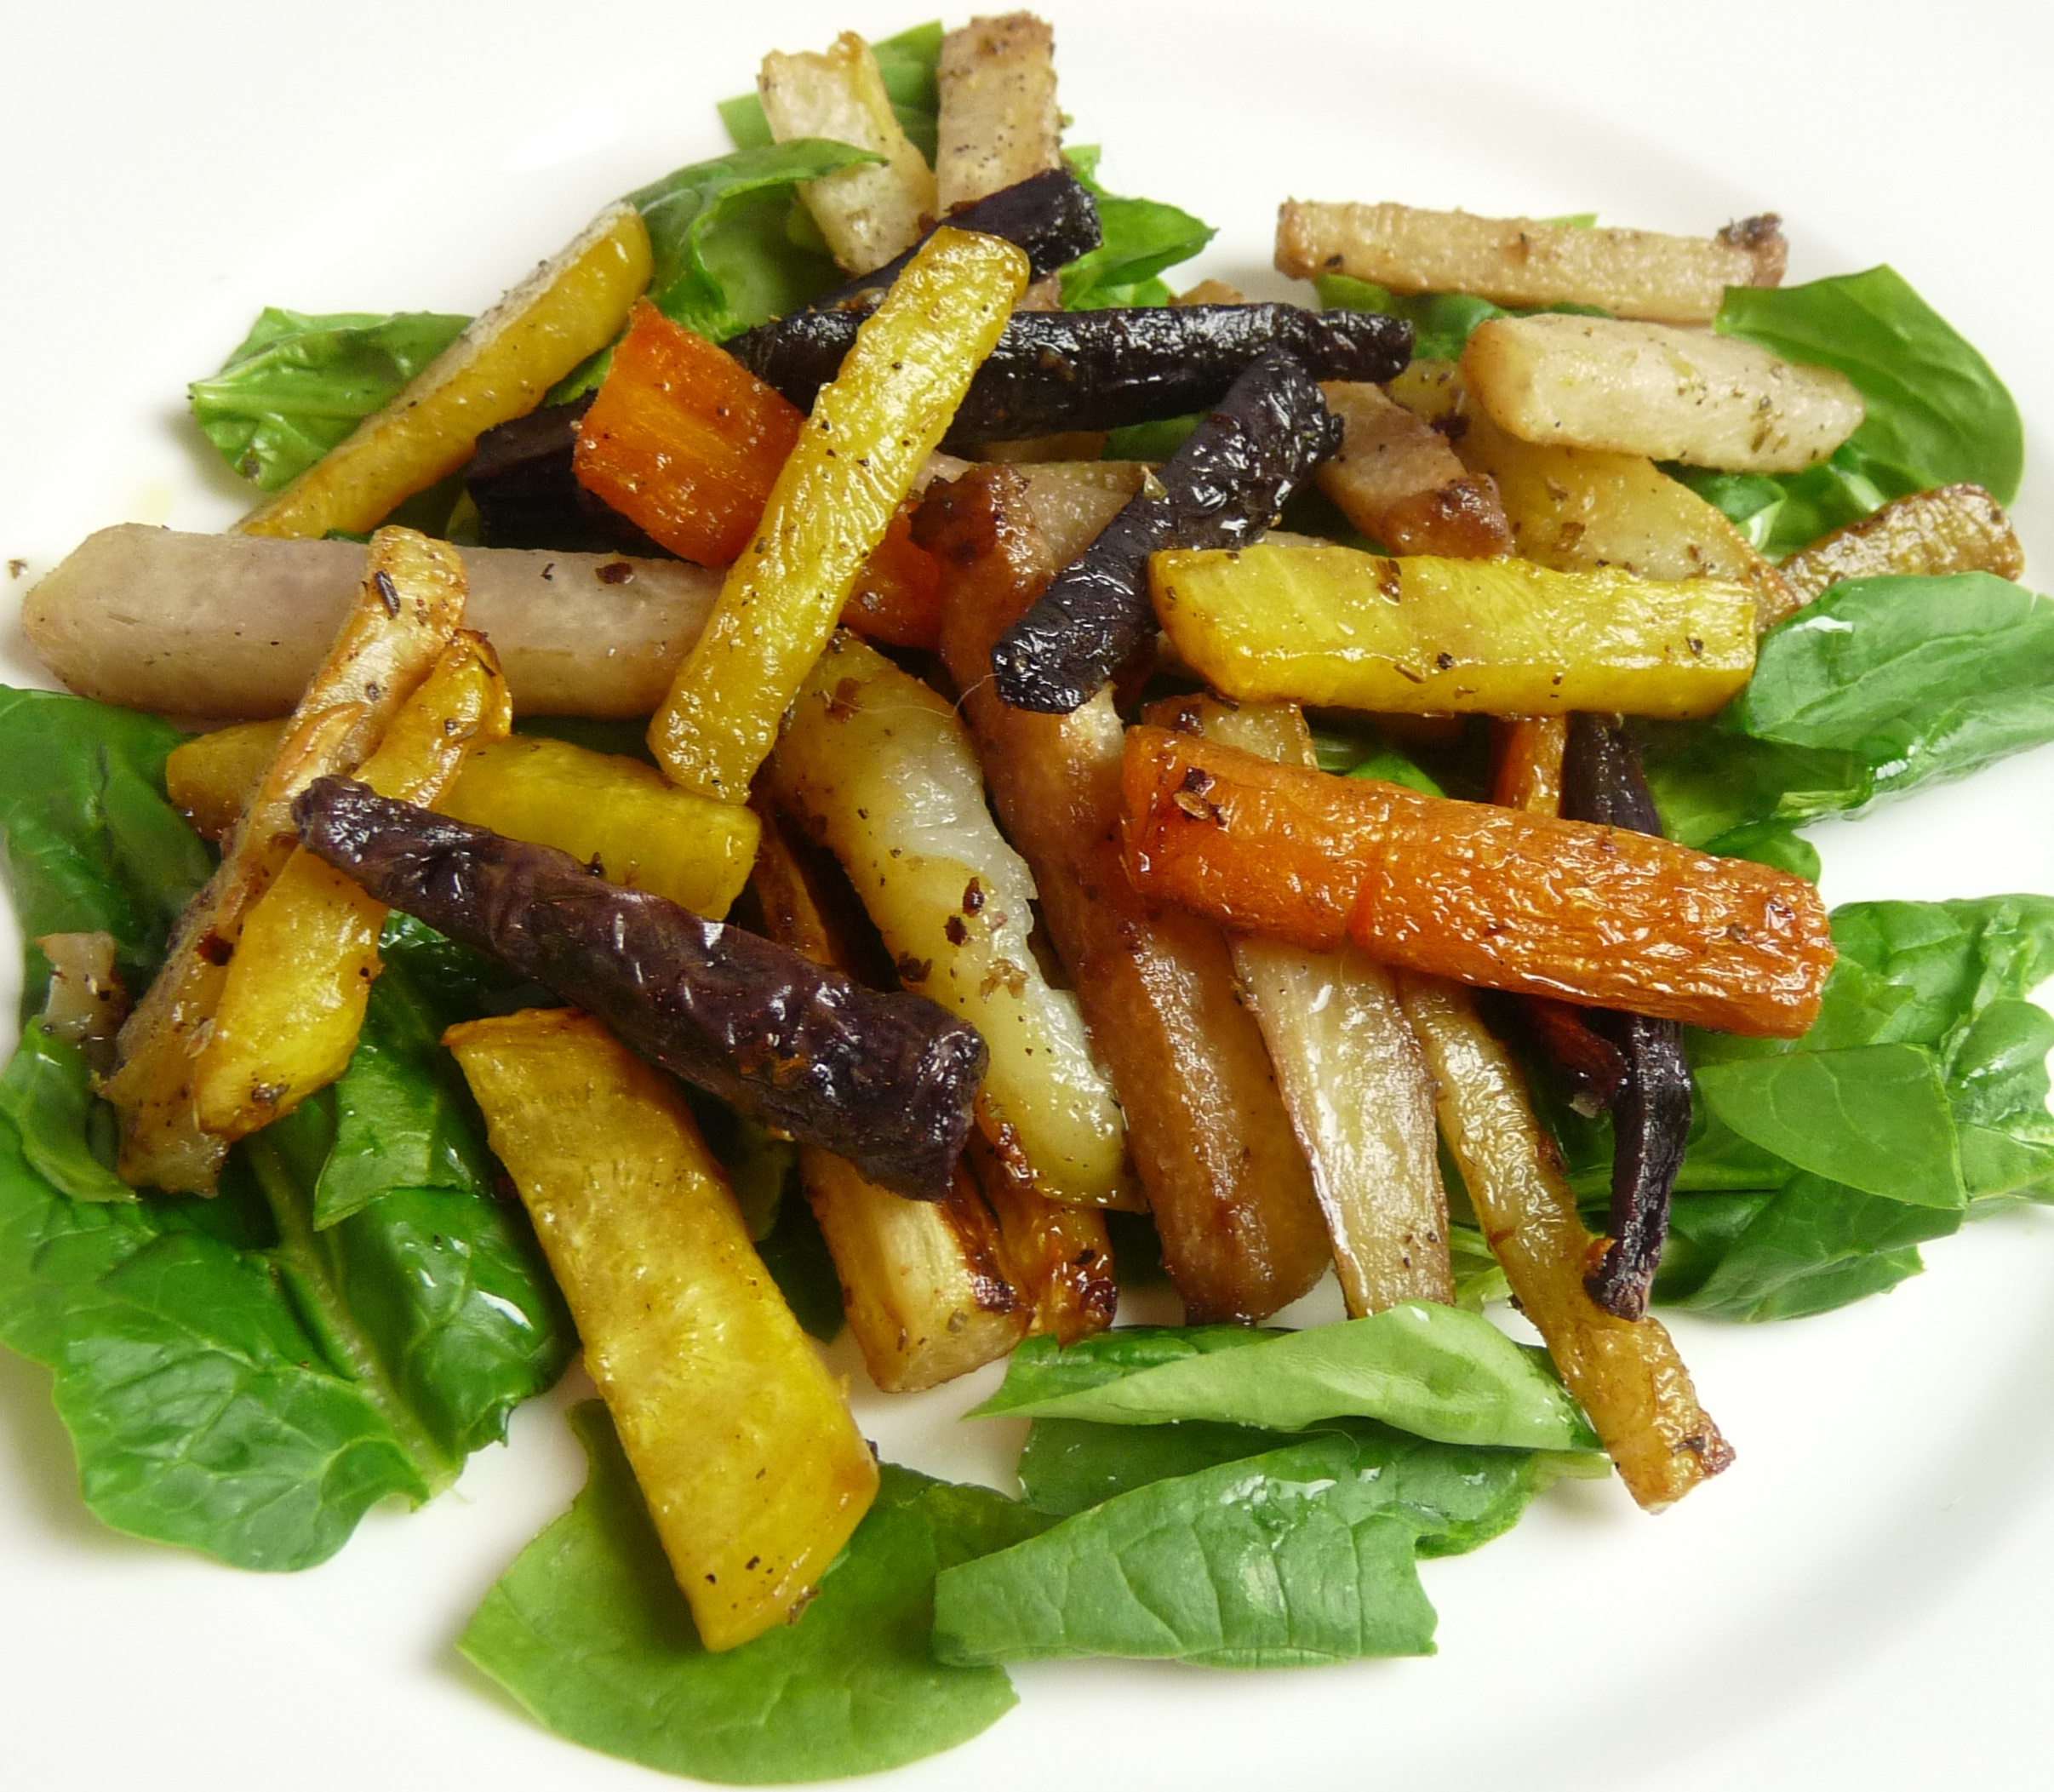 Roasted Prebiotic Veggies